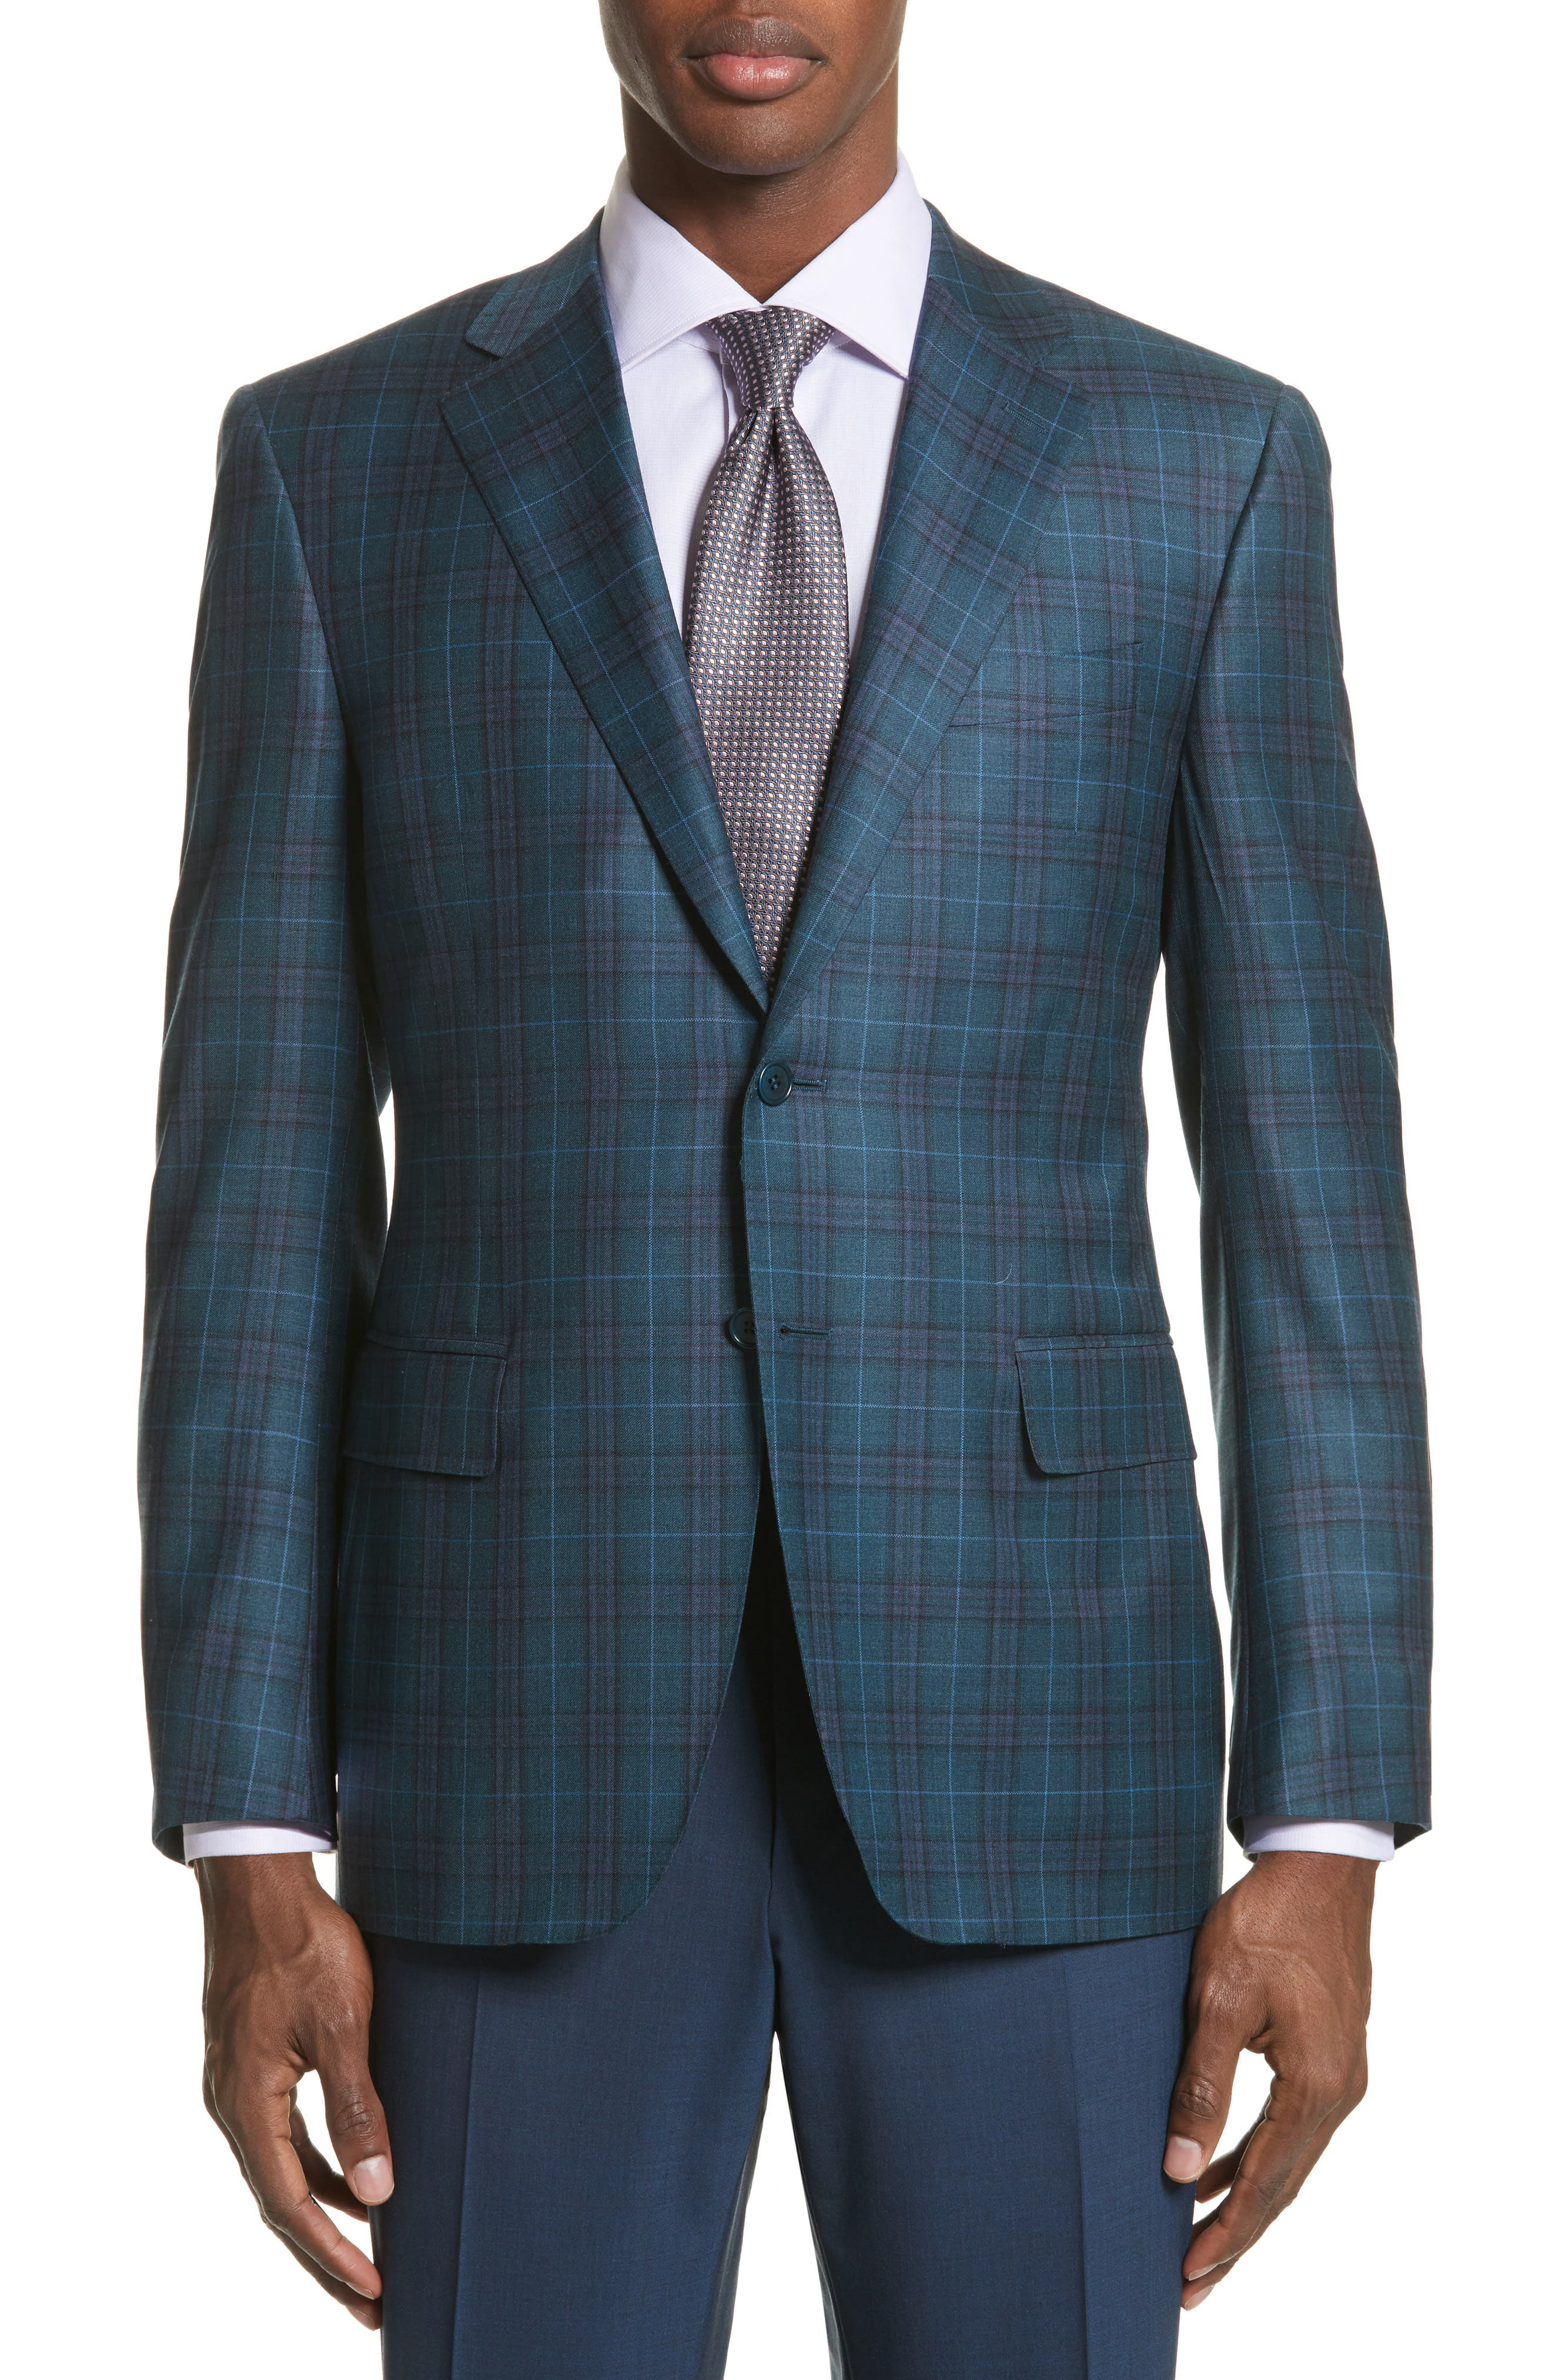 Alternate Image 1 Selected - Canali Classic Fit Plaid Wool Sport Coat